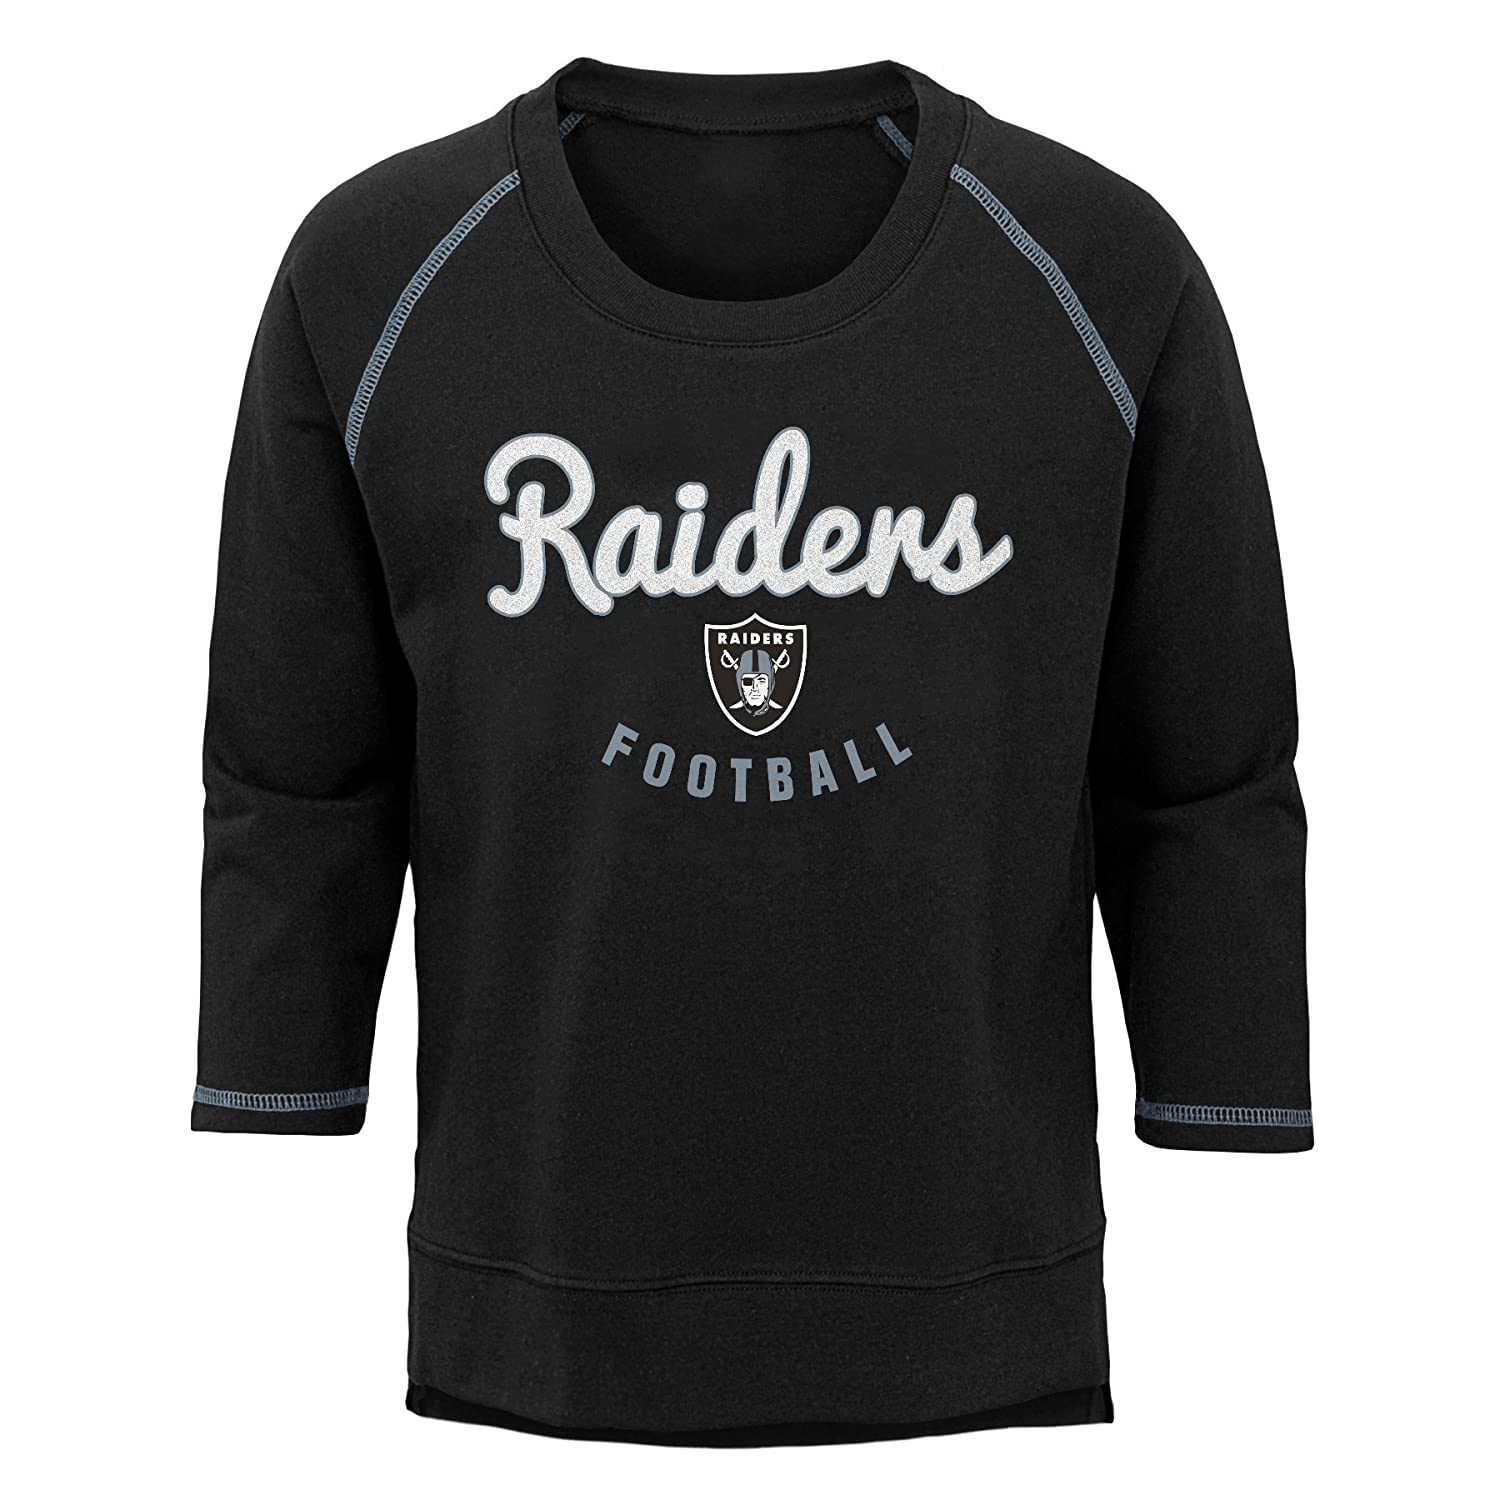 Youth X-Large NFL Oakland Raiders Youth Boys Overthrow Pullover Top Black 16